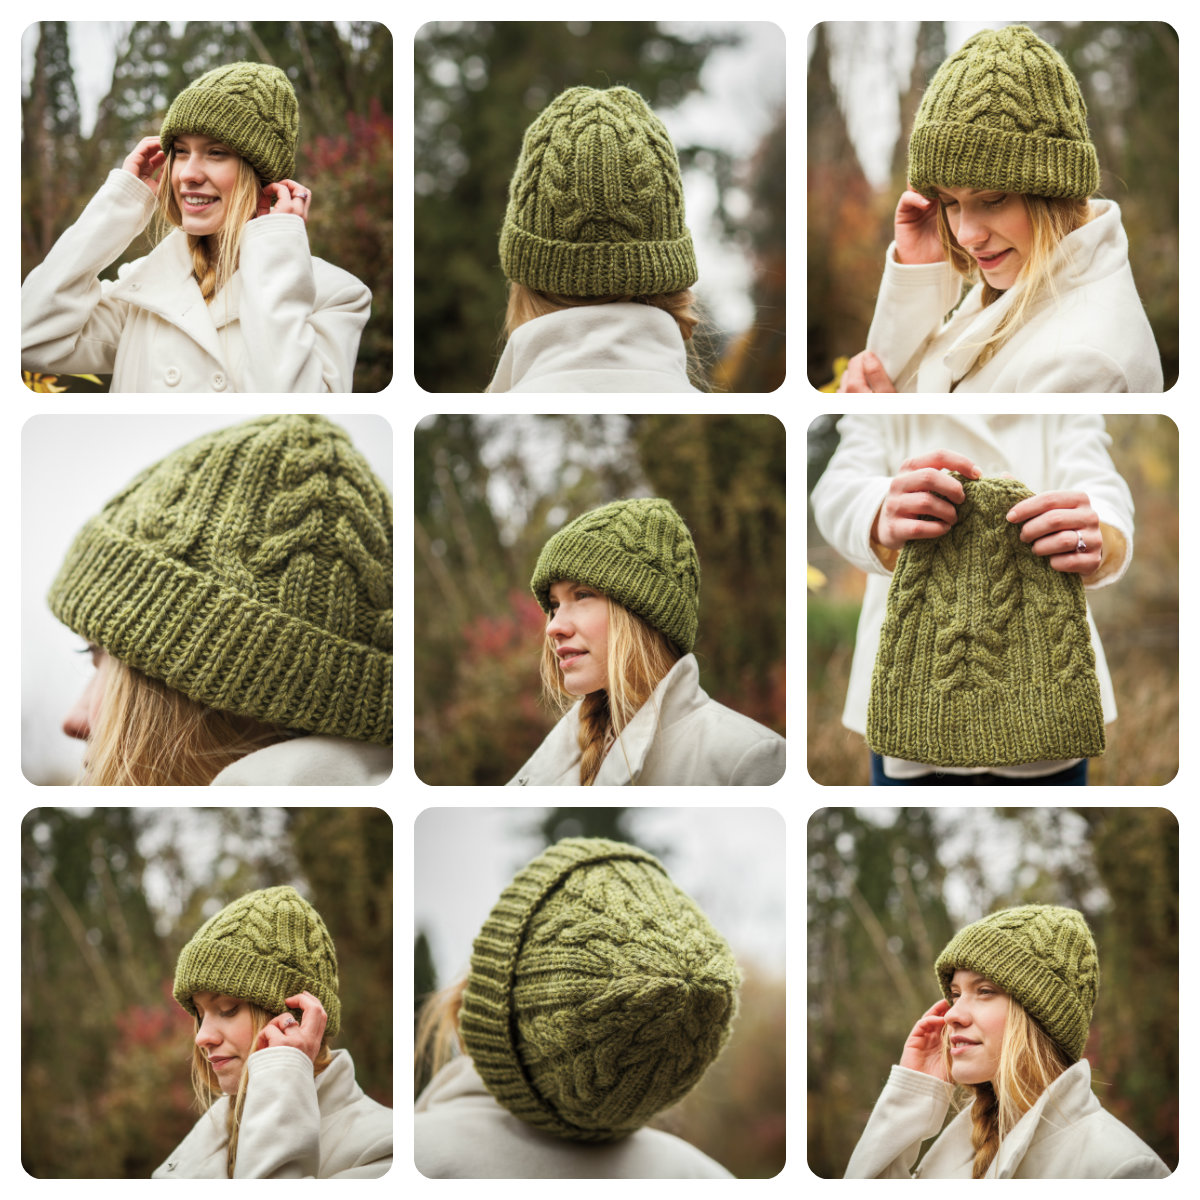 The Antrim hat photo shots